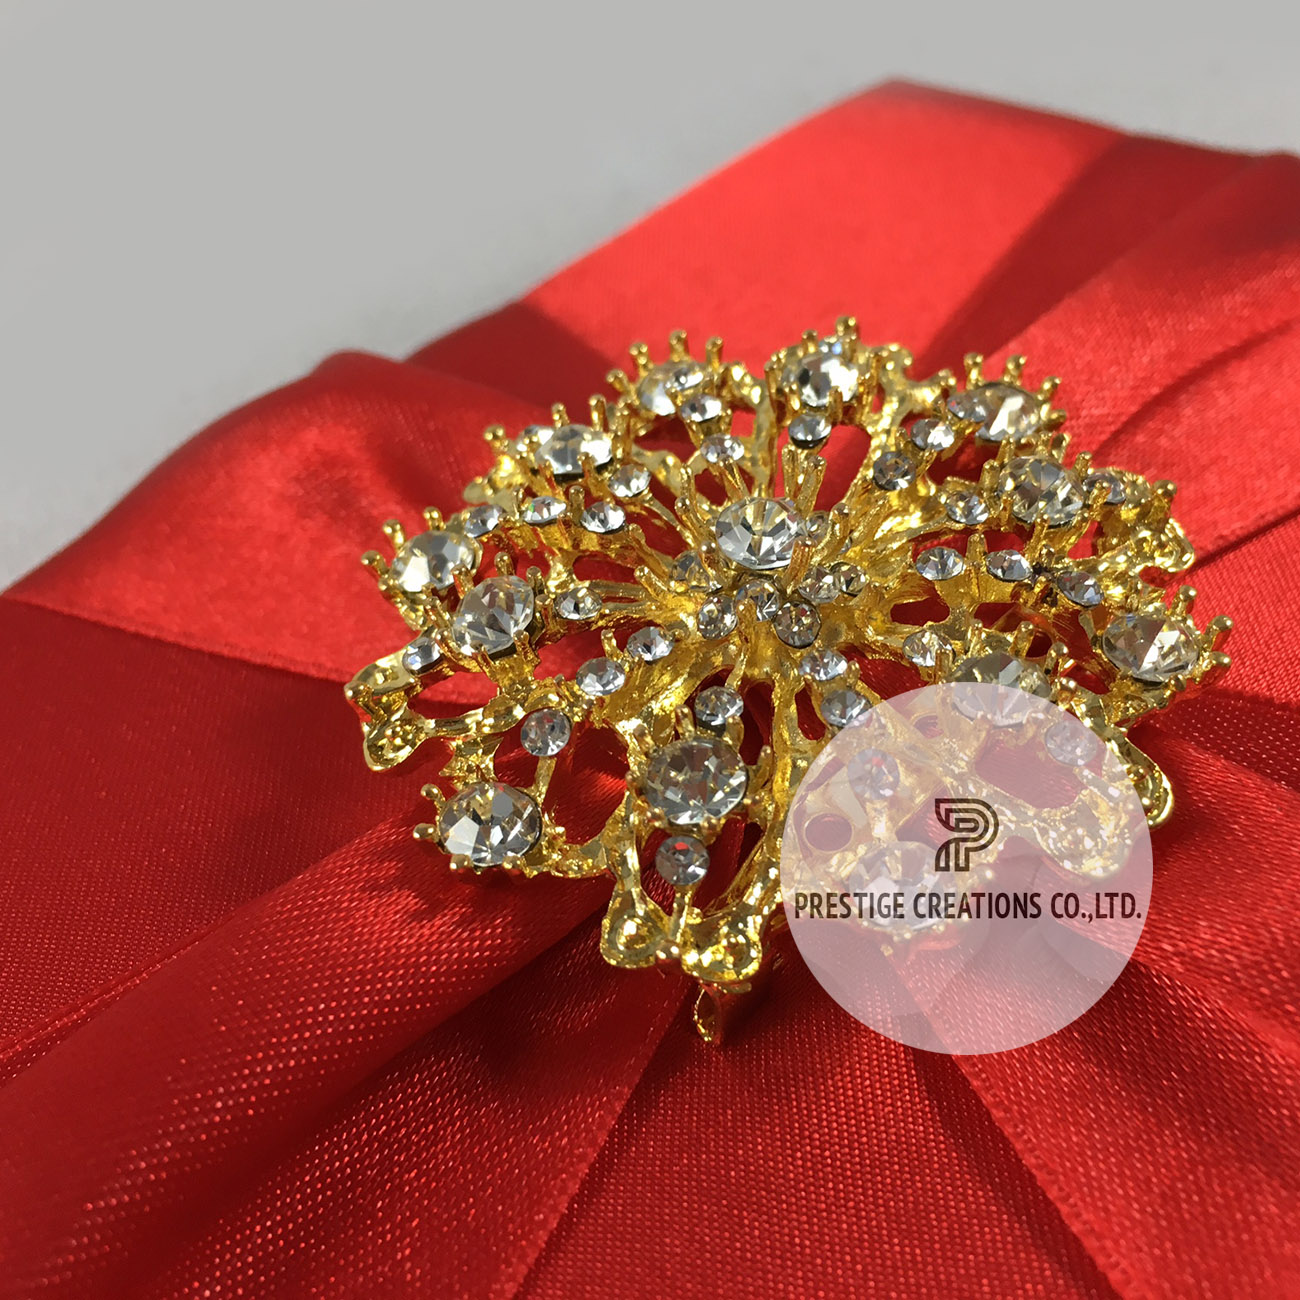 Luxury Red Pocket Fold Silk Wedding Invitation With Large Golden Brooch